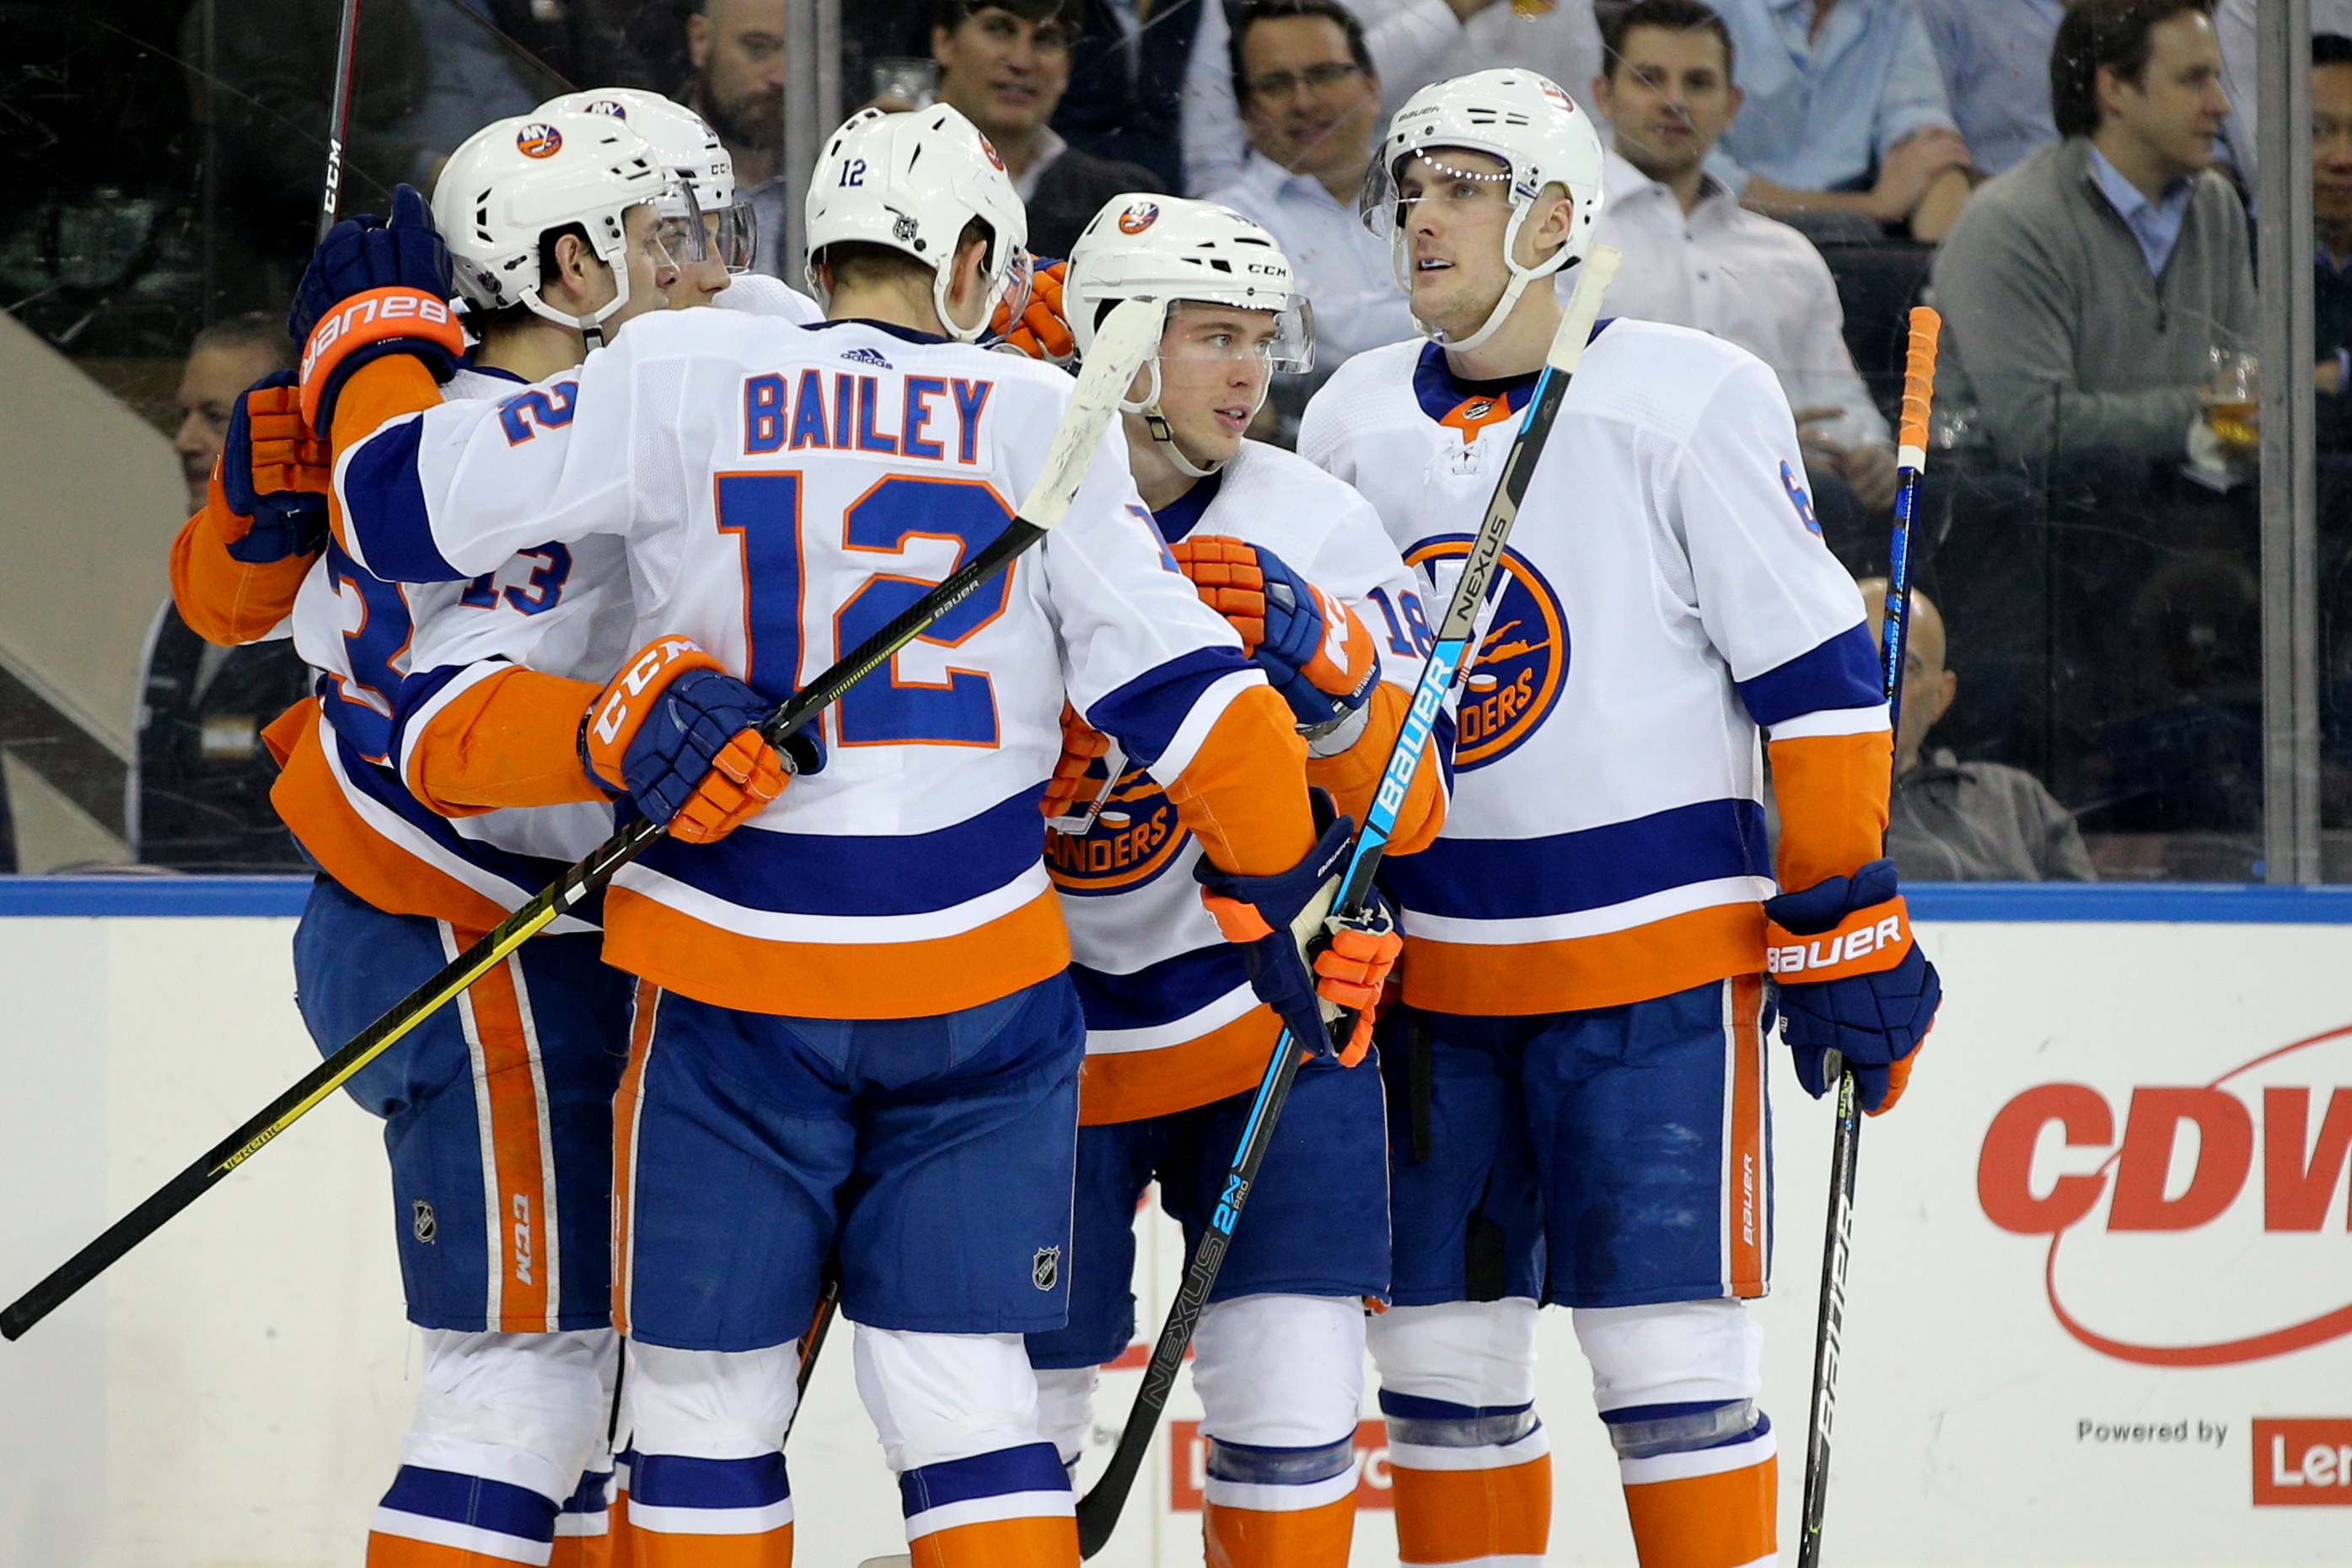 Jan 21, 2020; New York, New York, USA; New York Islanders left wing Anthony Beauvillier (18) celebrates with teammates after scoring a power play goal against the New York Rangers during the first period at Madison Square Garden. Mandatory Credit: Brad Penner-USA TODAY Sports